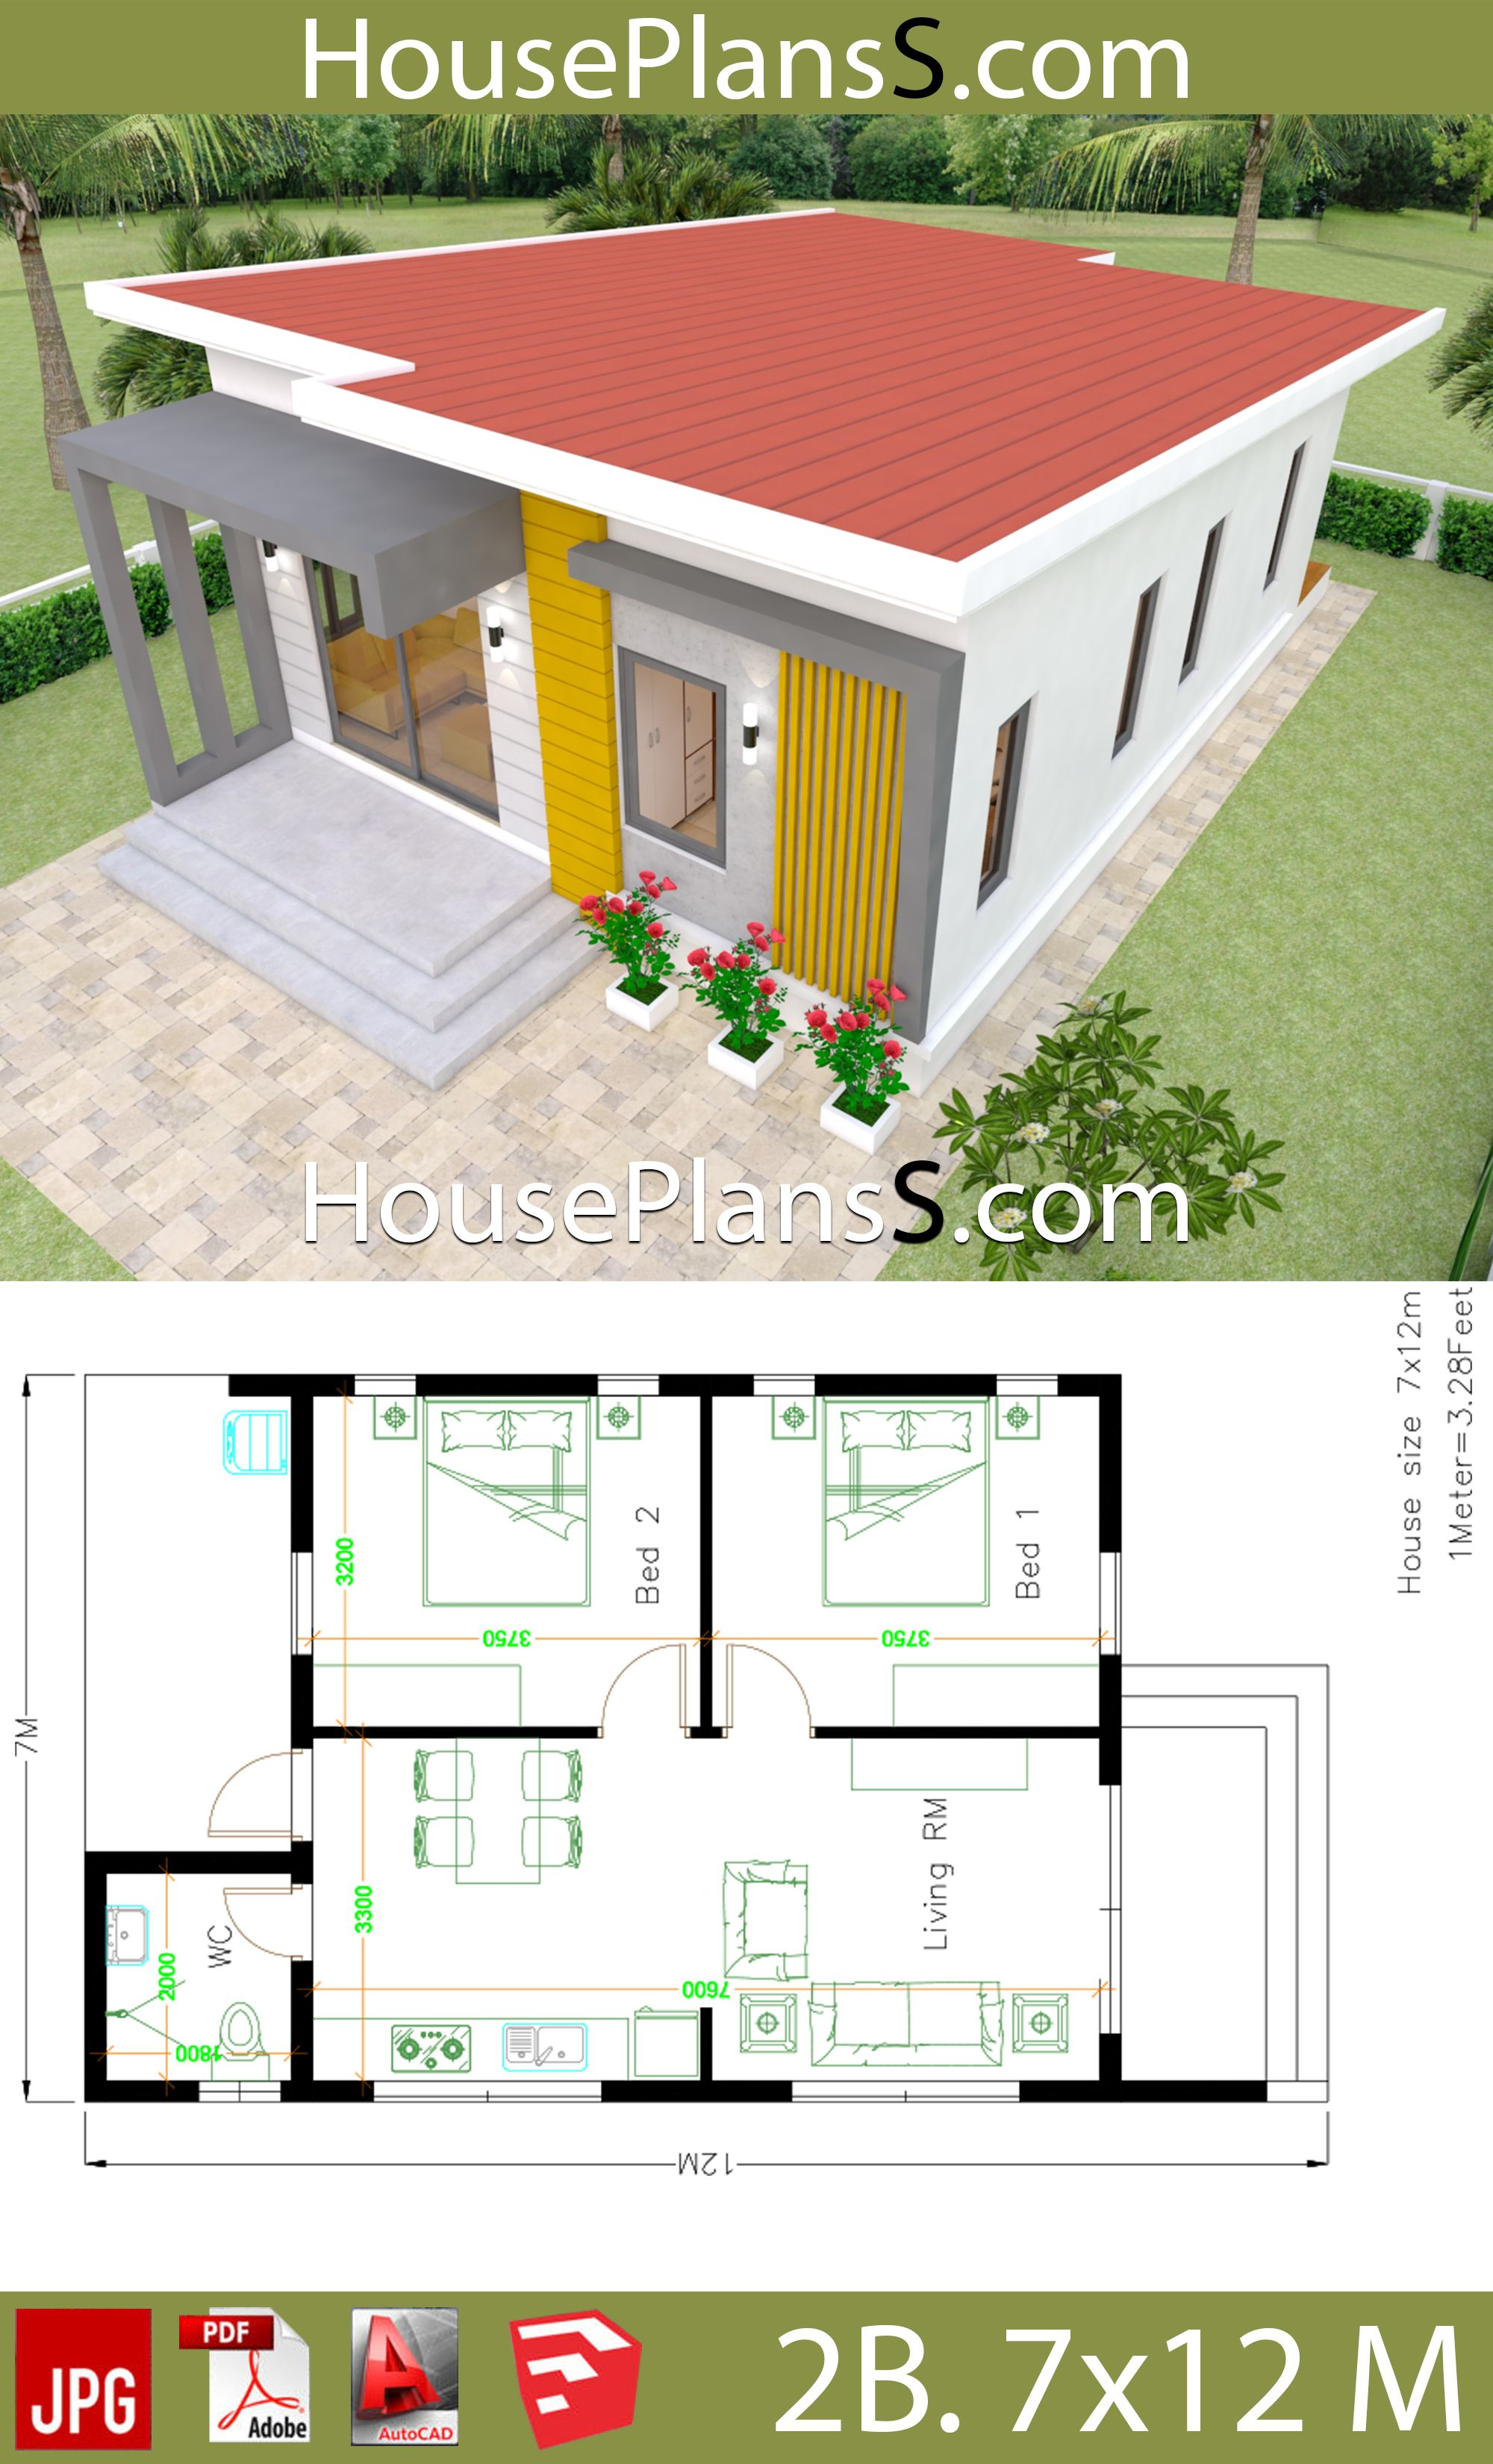 Small House Design Plans 7x12 With 2 Bedrooms Full Plans House Plans 3d Small House Design Plans Small House Model House Design